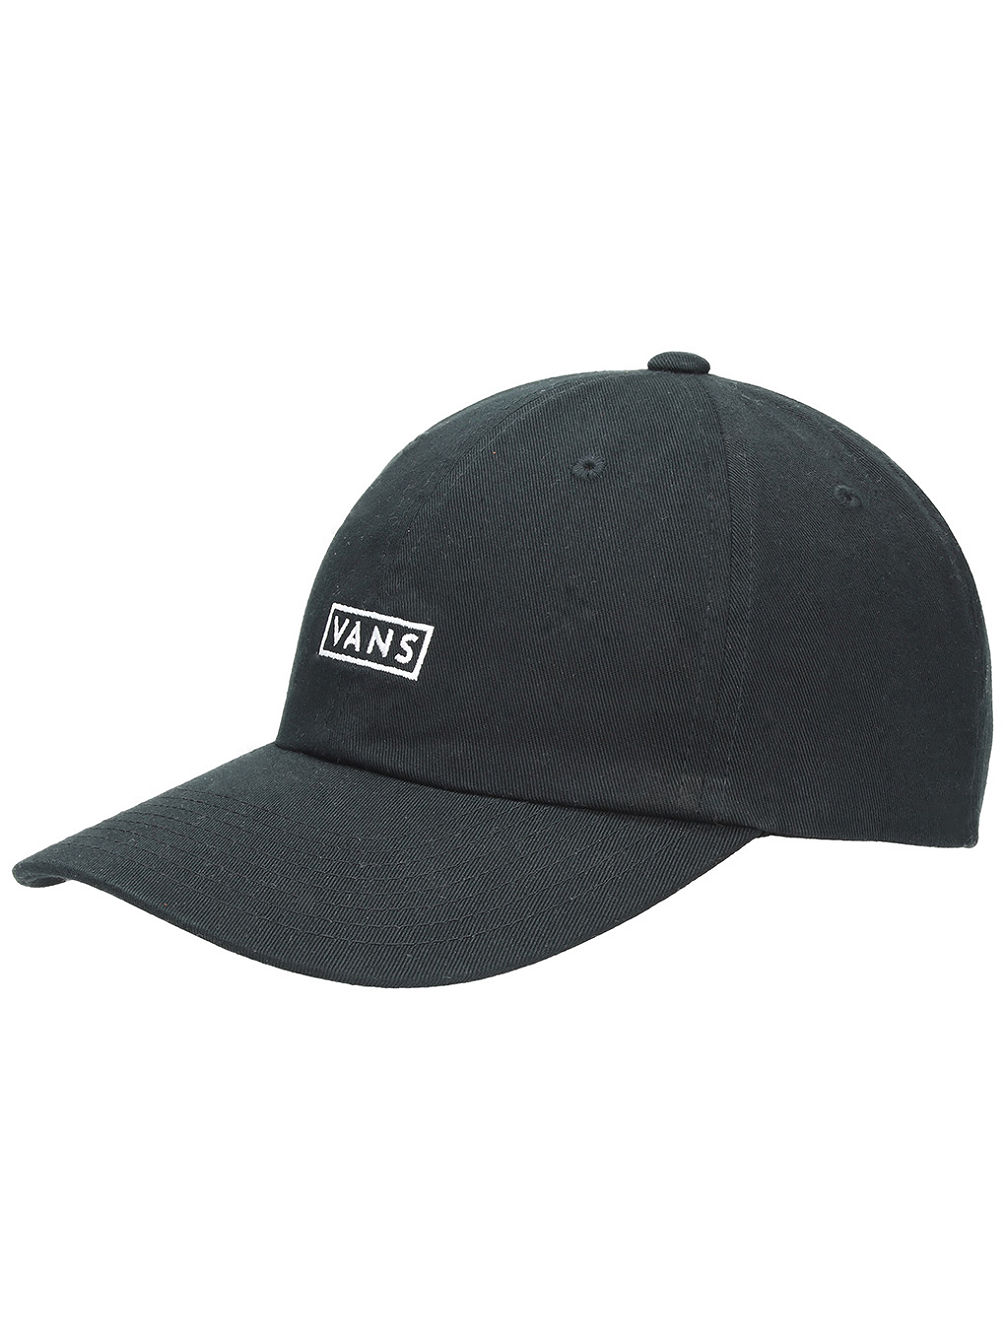 Curved Bill Jockey Cap